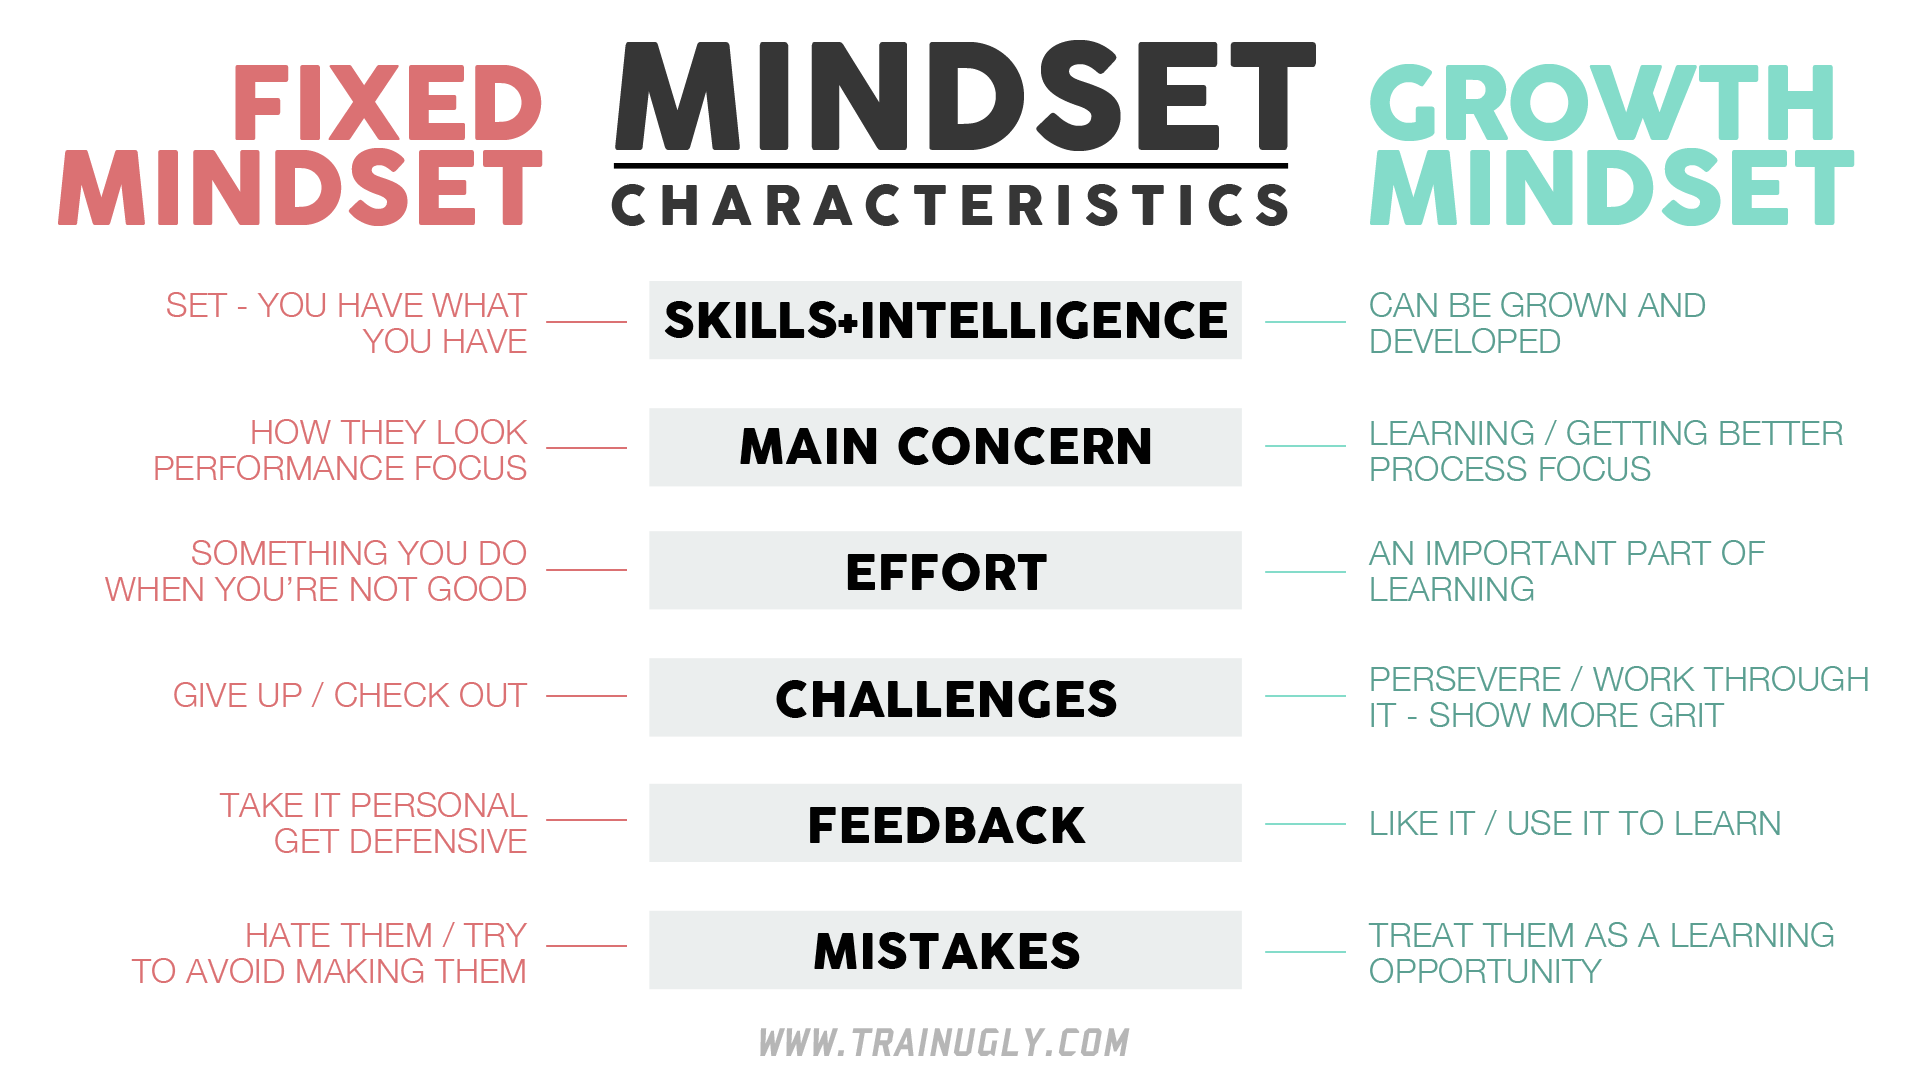 The Growth Mindset Matrix